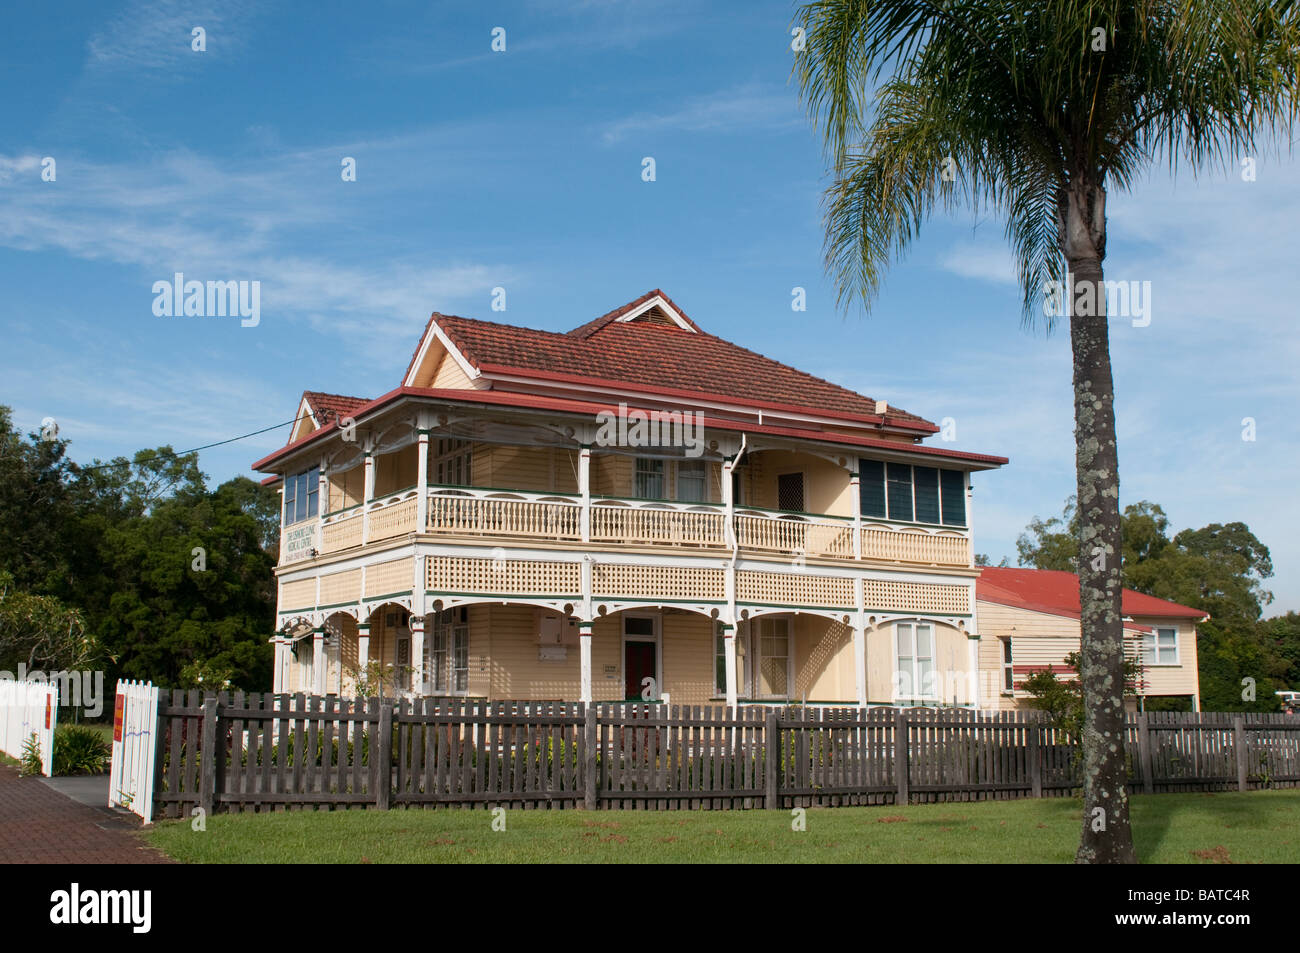 Victorian house with veranda Lismore NSW Australia - Stock Image